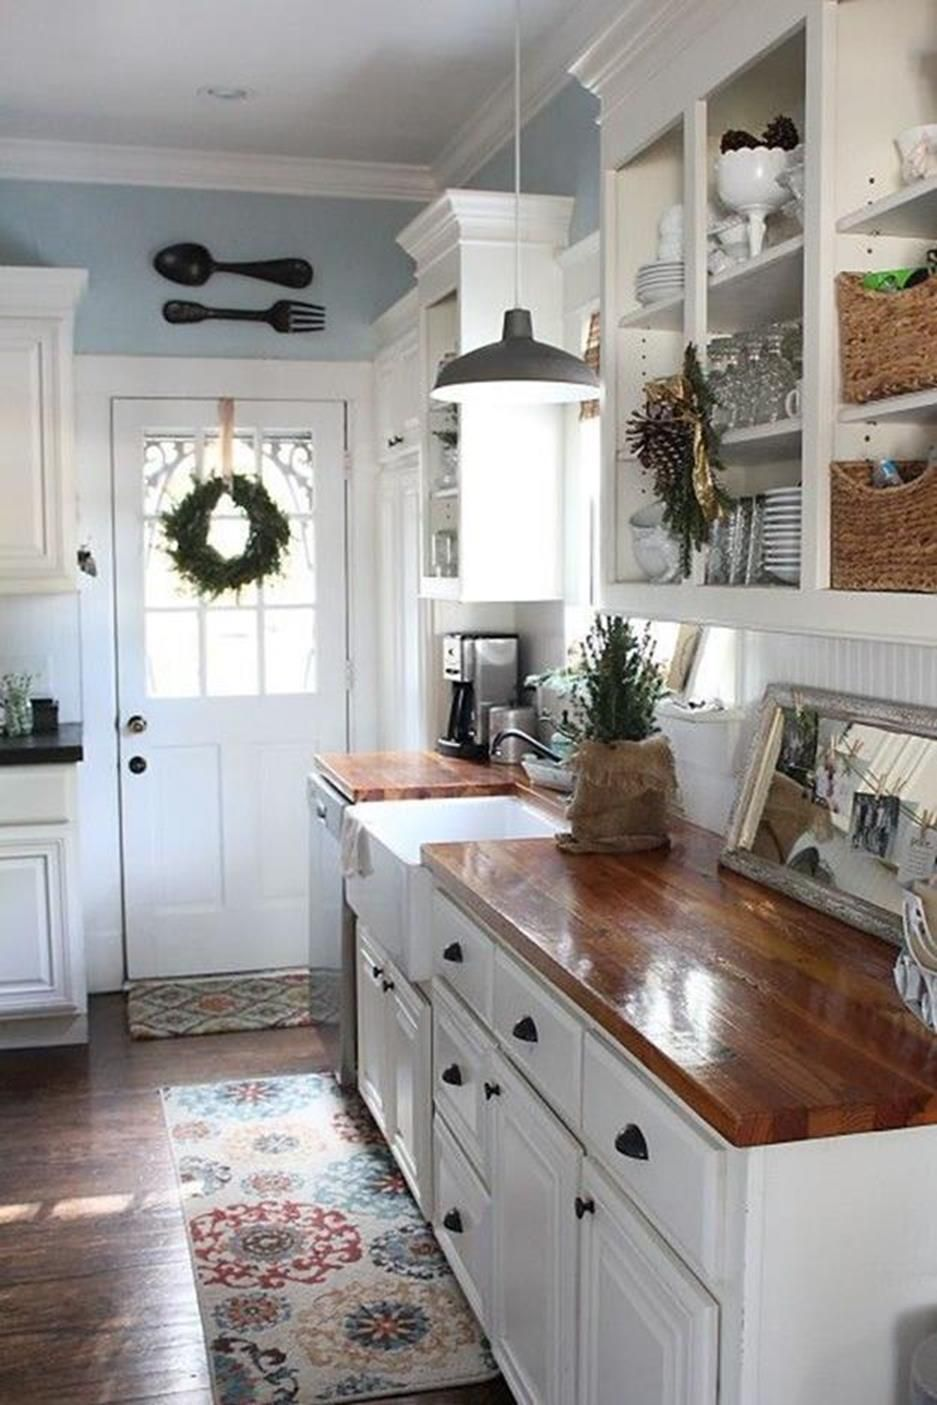 35 perfect small cottage kitchens decorating ideas small on extraordinary kitchen remodel ideas id=22959